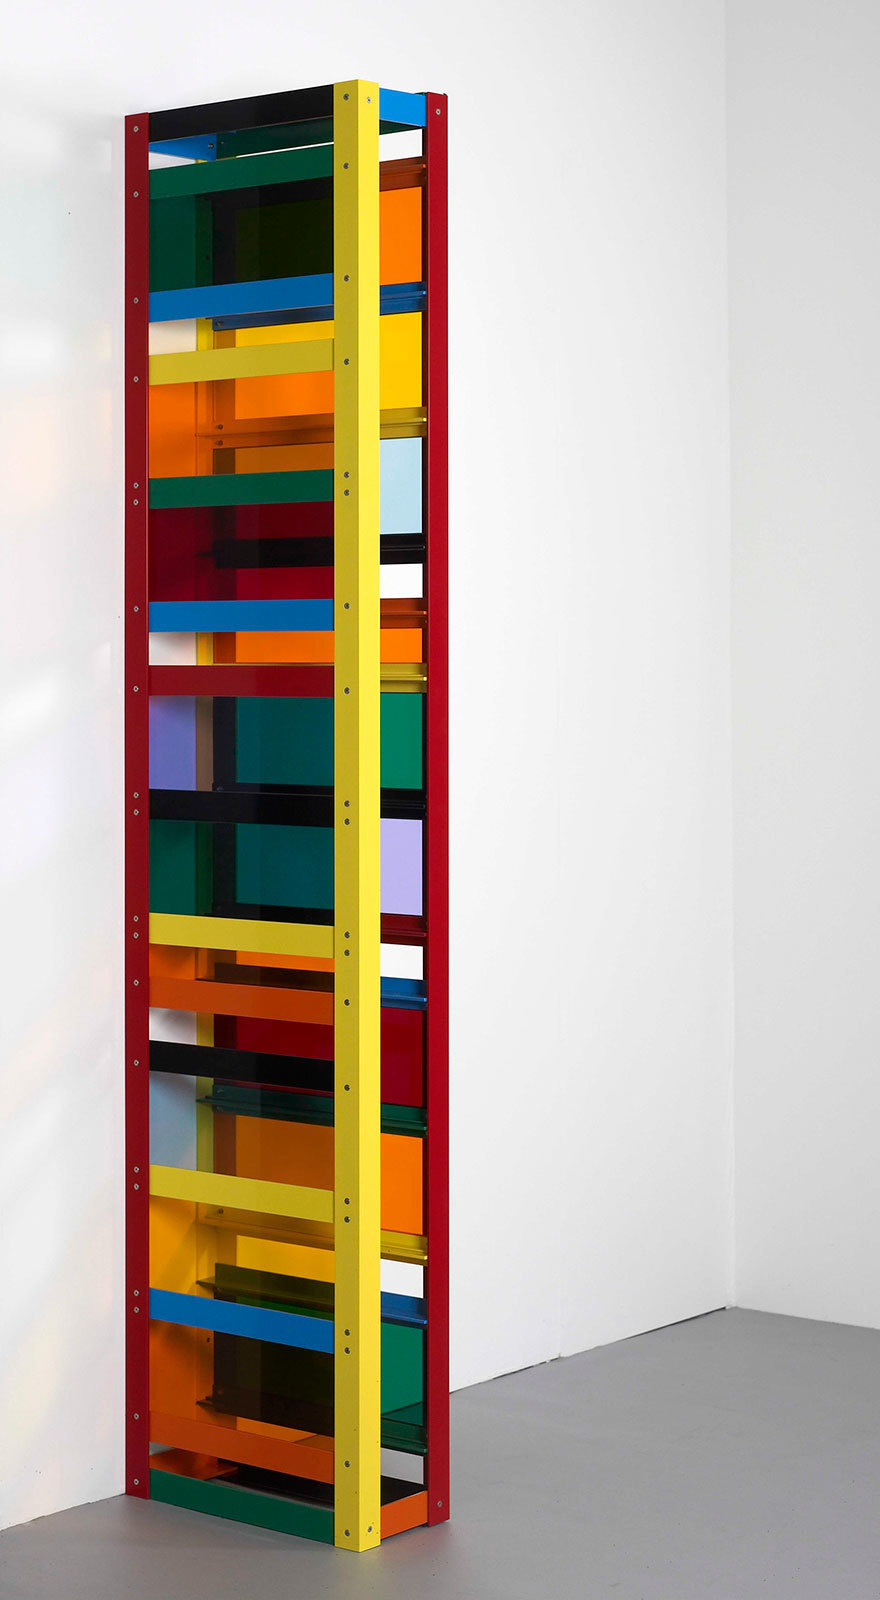 Maureen-Paley-Liam-Gillick-Artwork-DISTRIBUTED-ALIGNMENT-2010.jpg